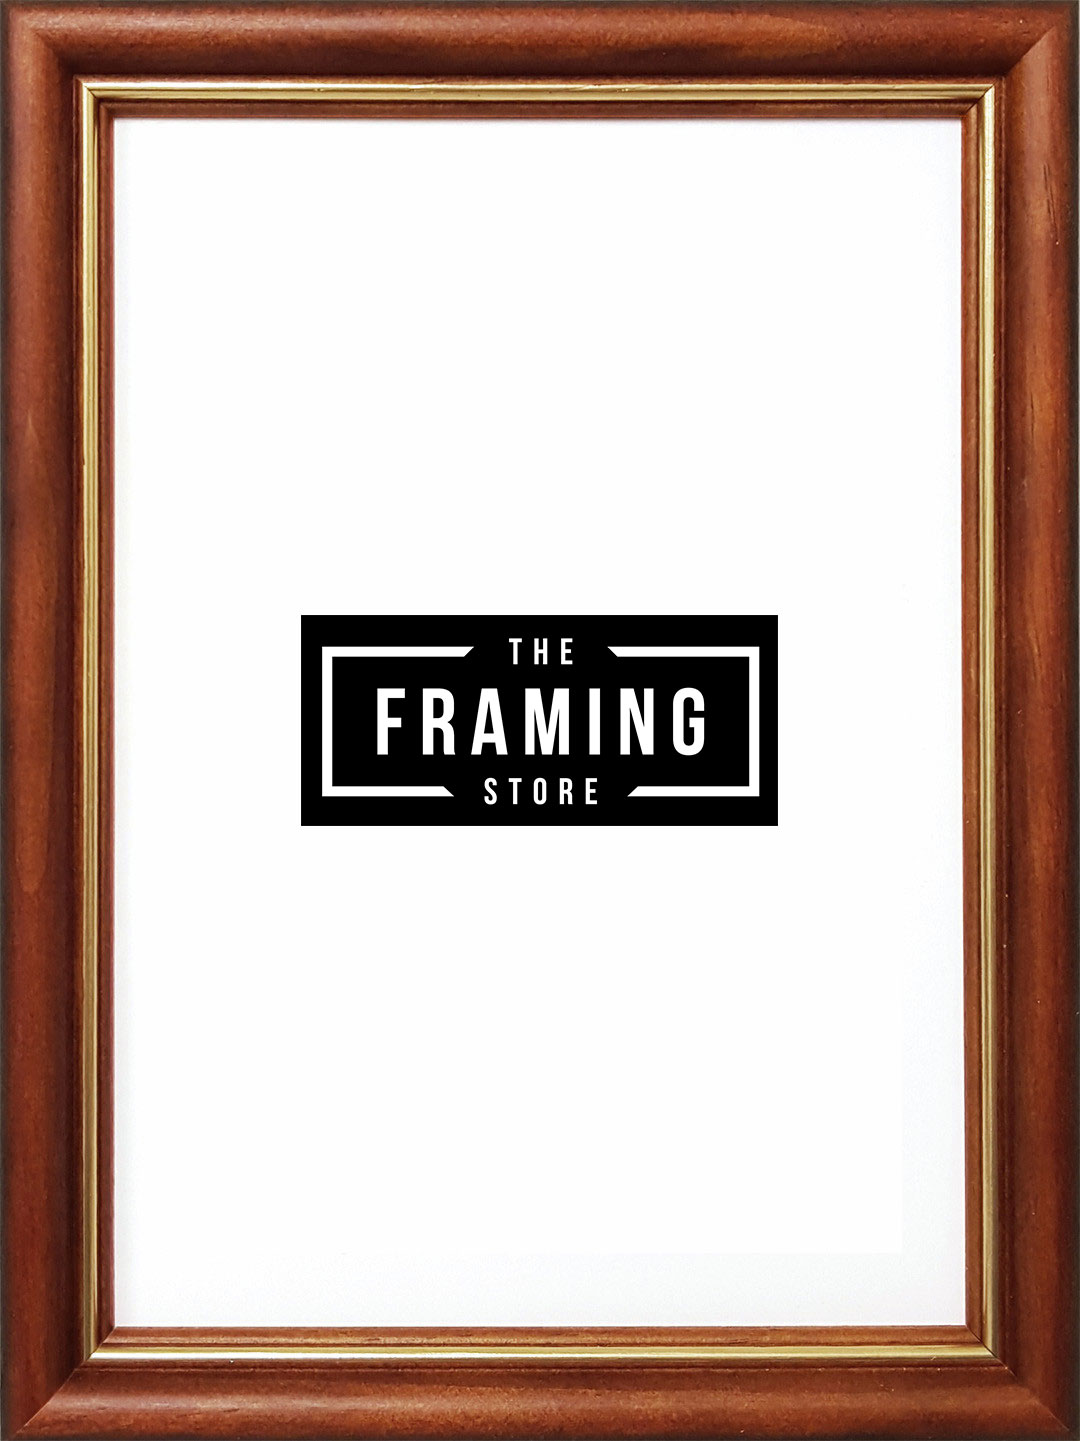 Australian made 8x10 Silver coloured plain frame (203mm x 254mm)